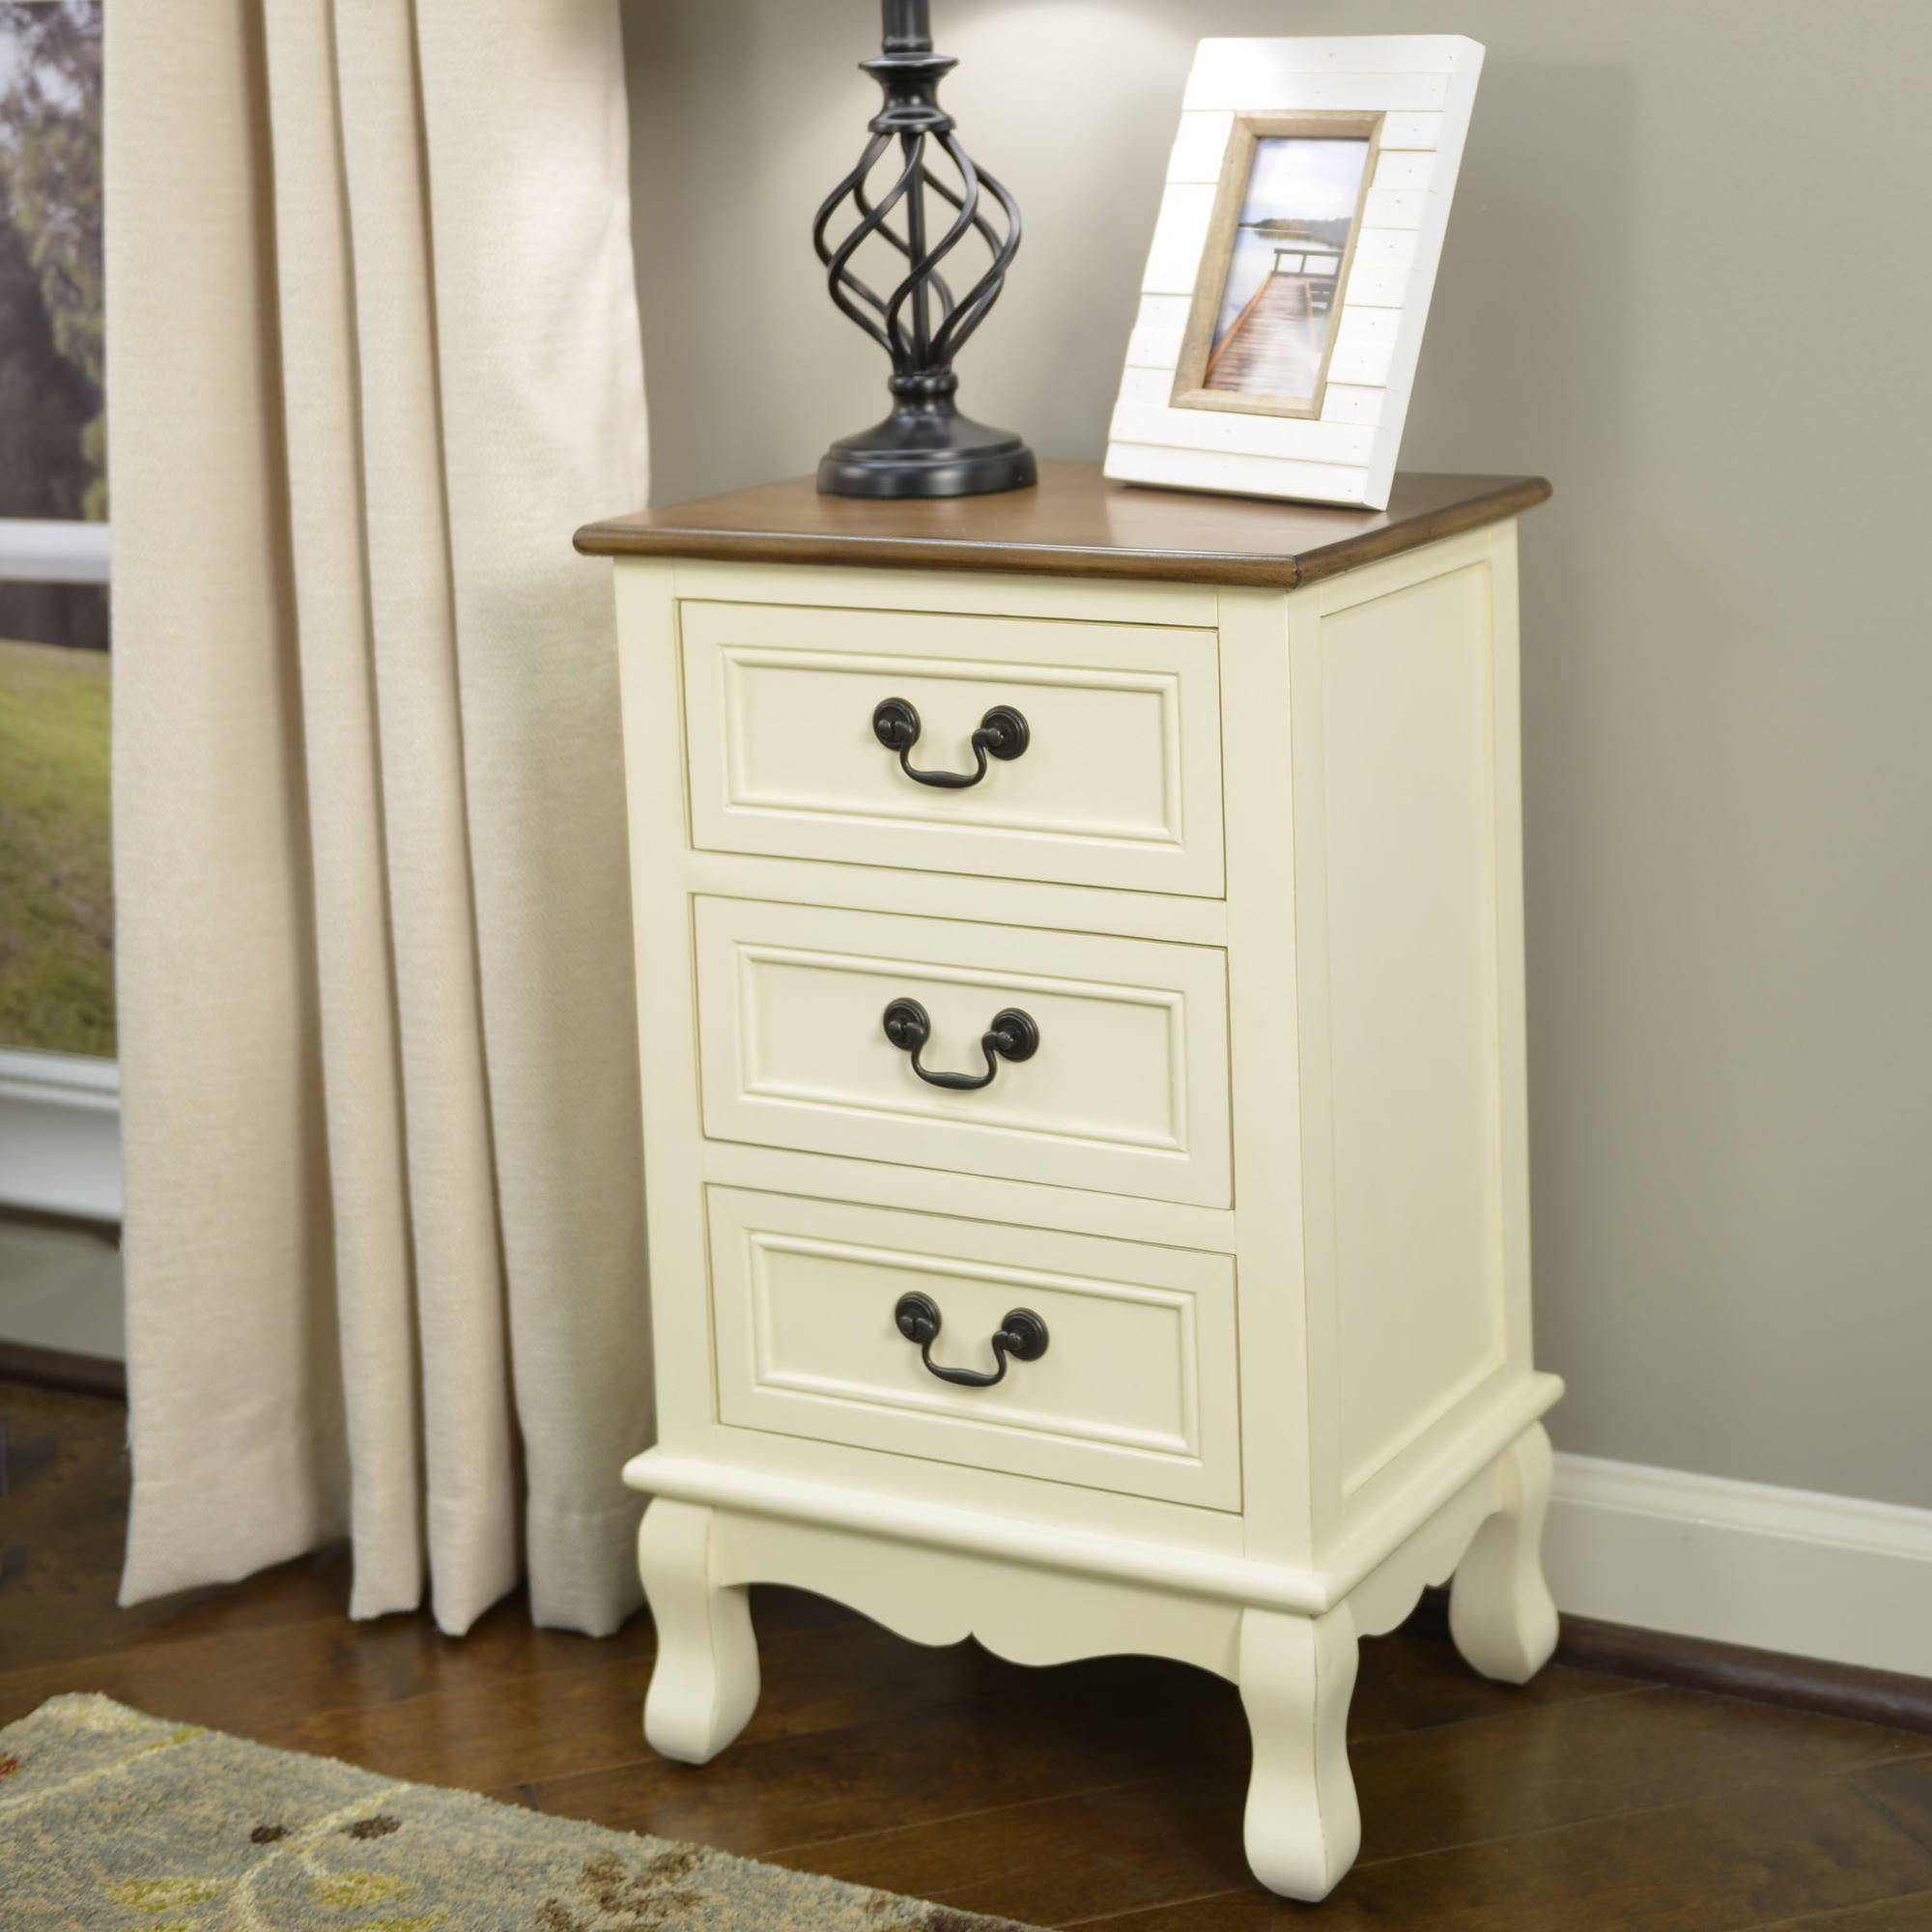 better homes and gardens two tone drawer accent table multiple end with drawers colors kohls jewelry coupon badcock furniture locations small side target dog crates lockable chest